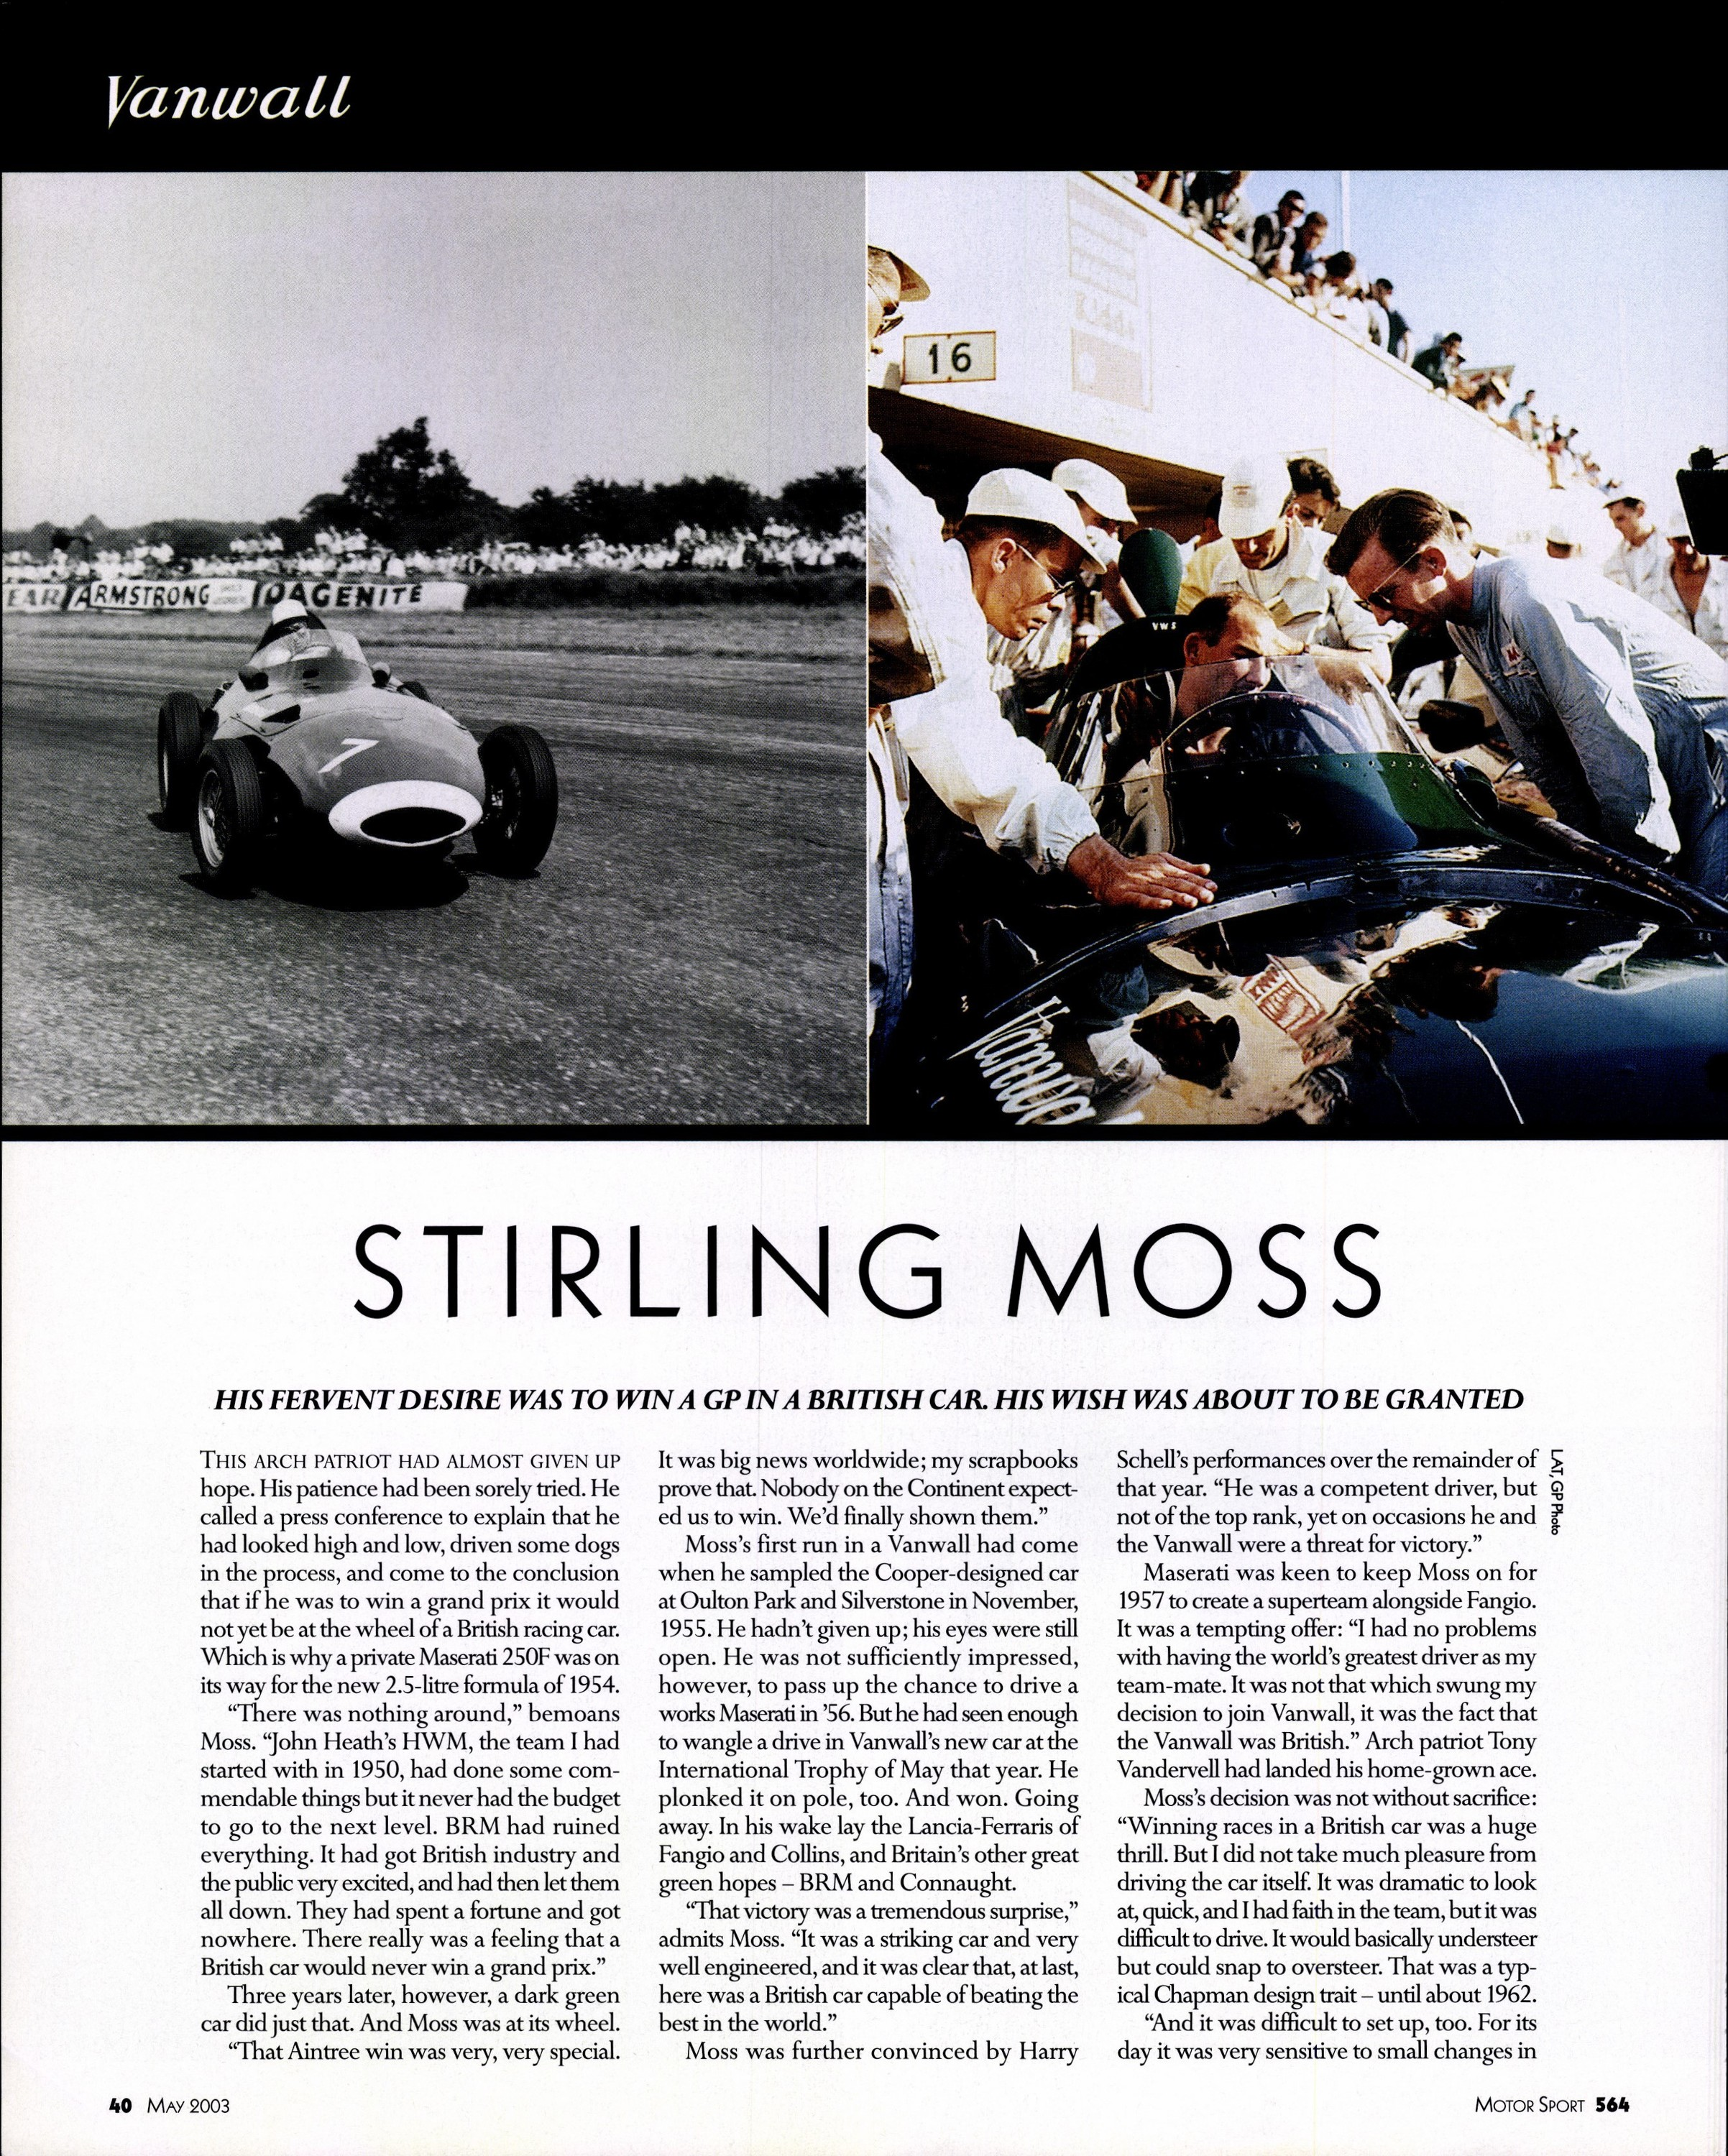 stirling moss image